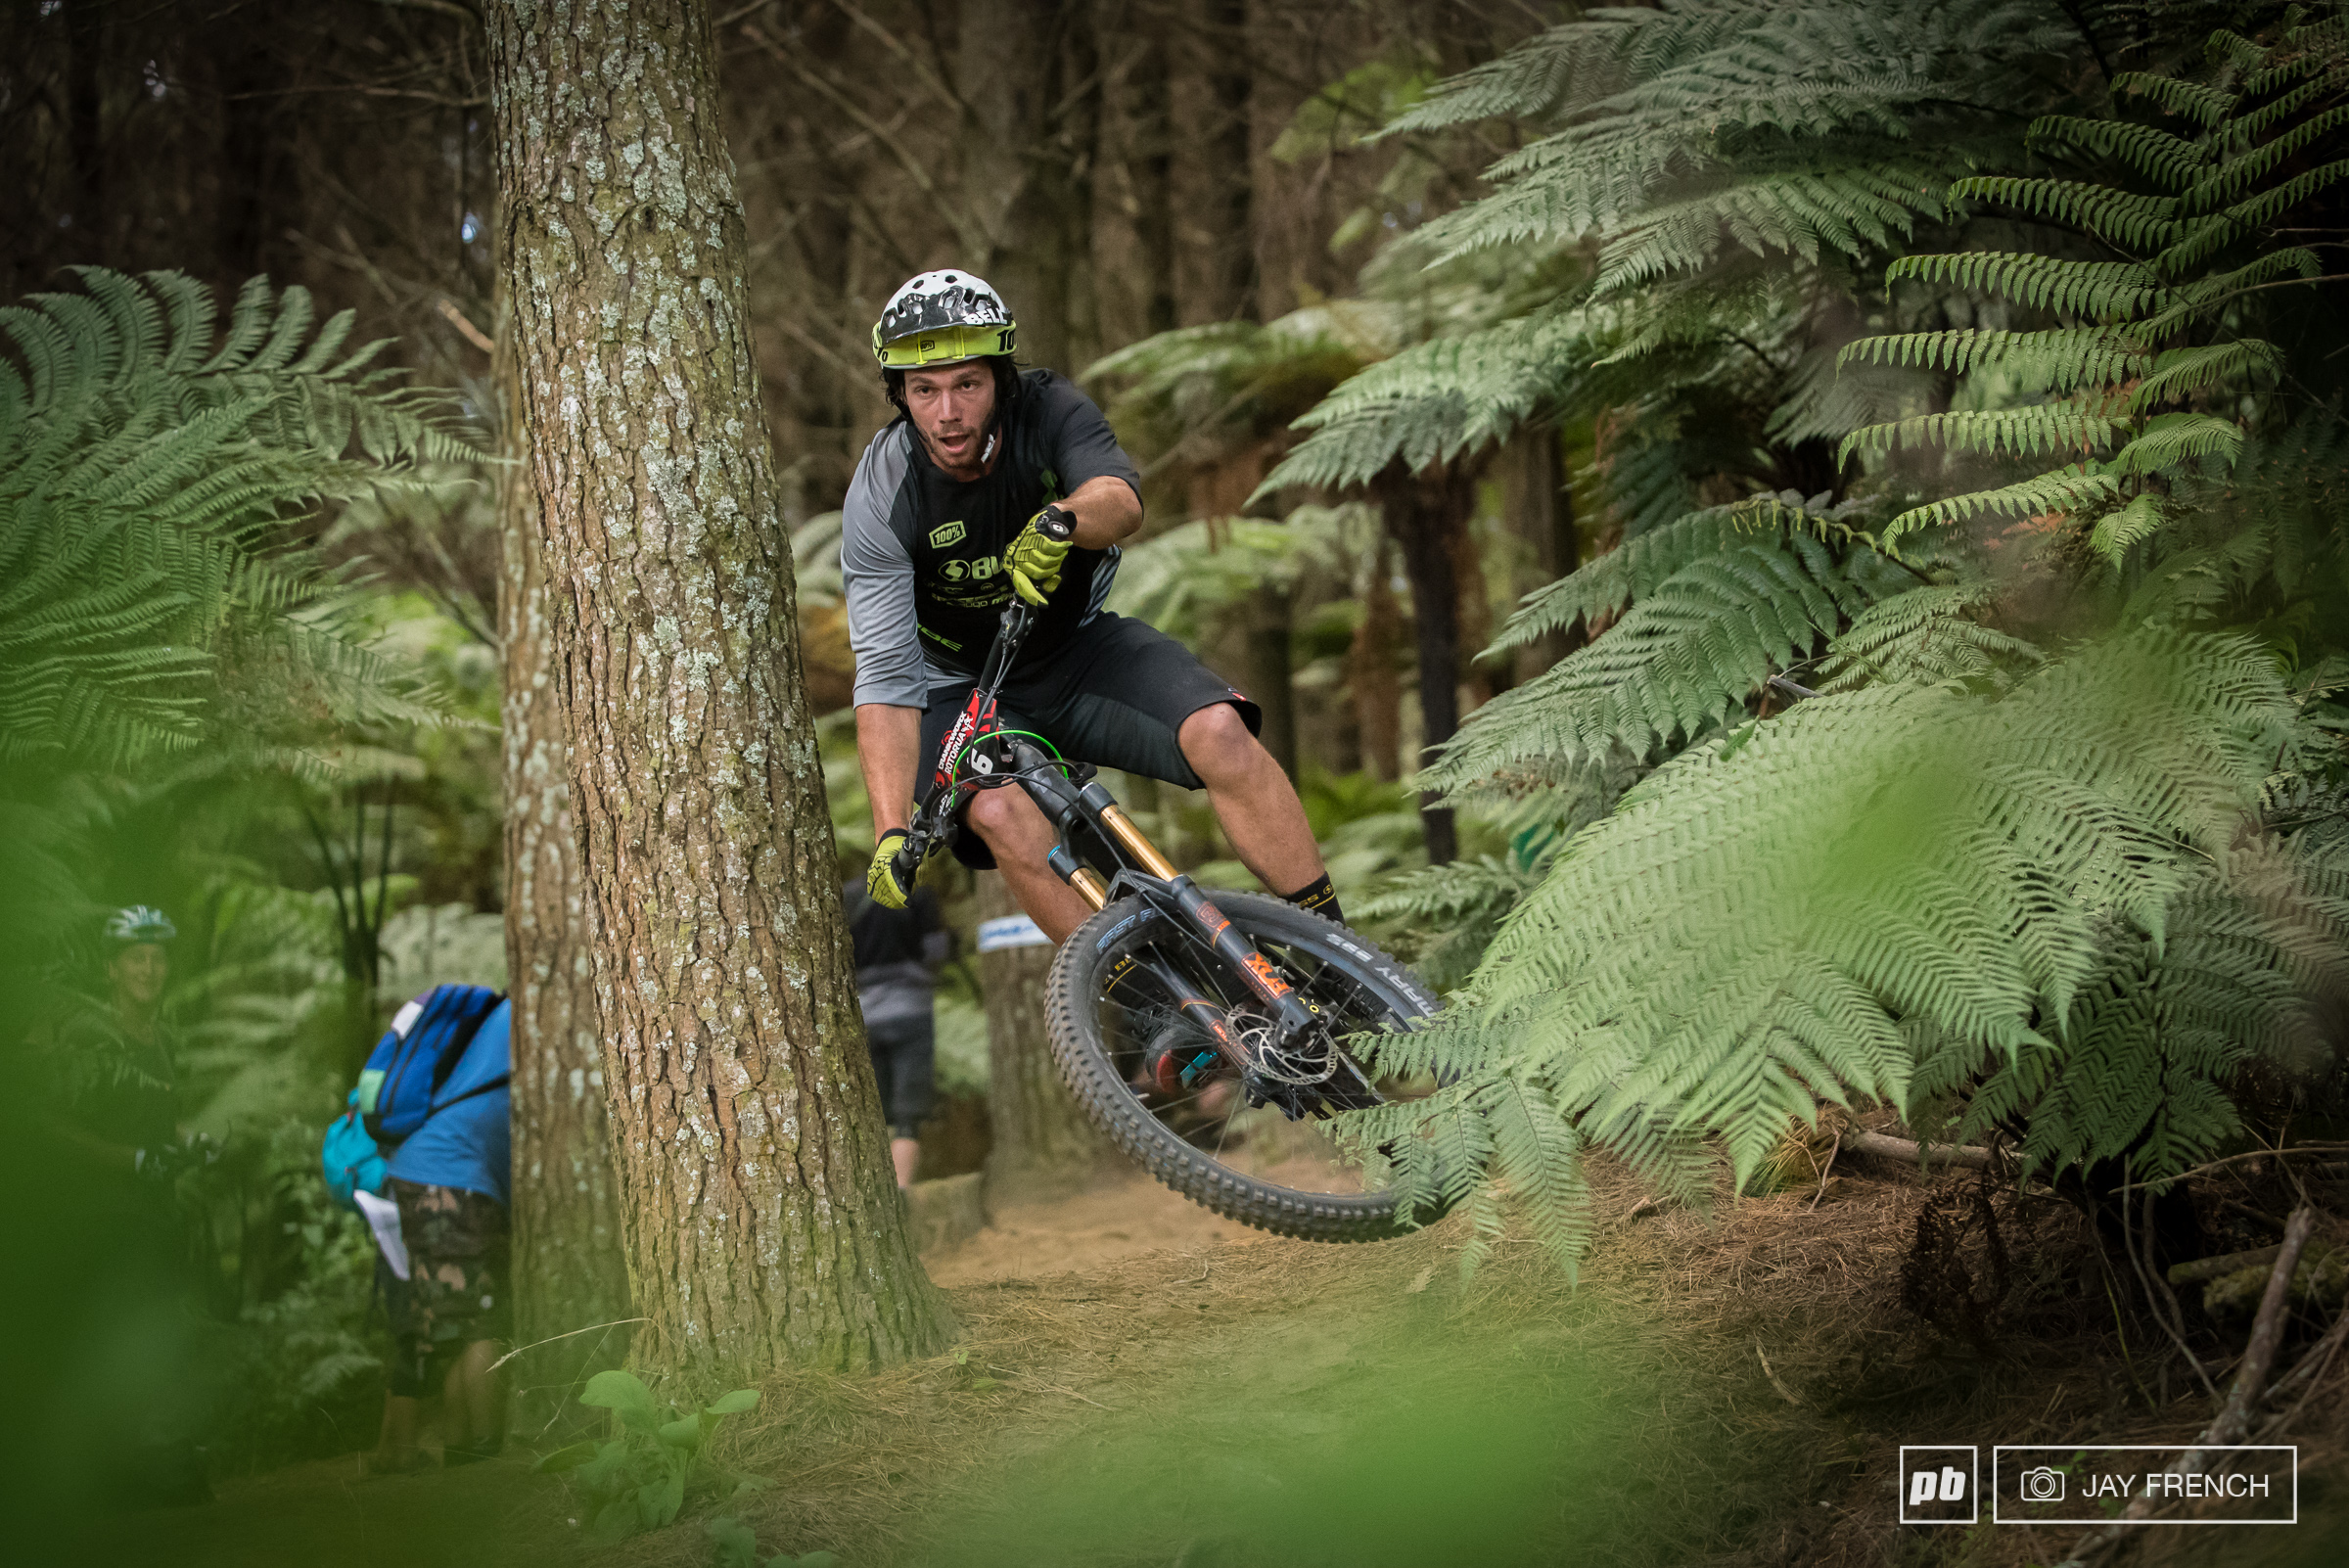 Cube racer Matt Walker shows he has style for miles in the Redwoods.